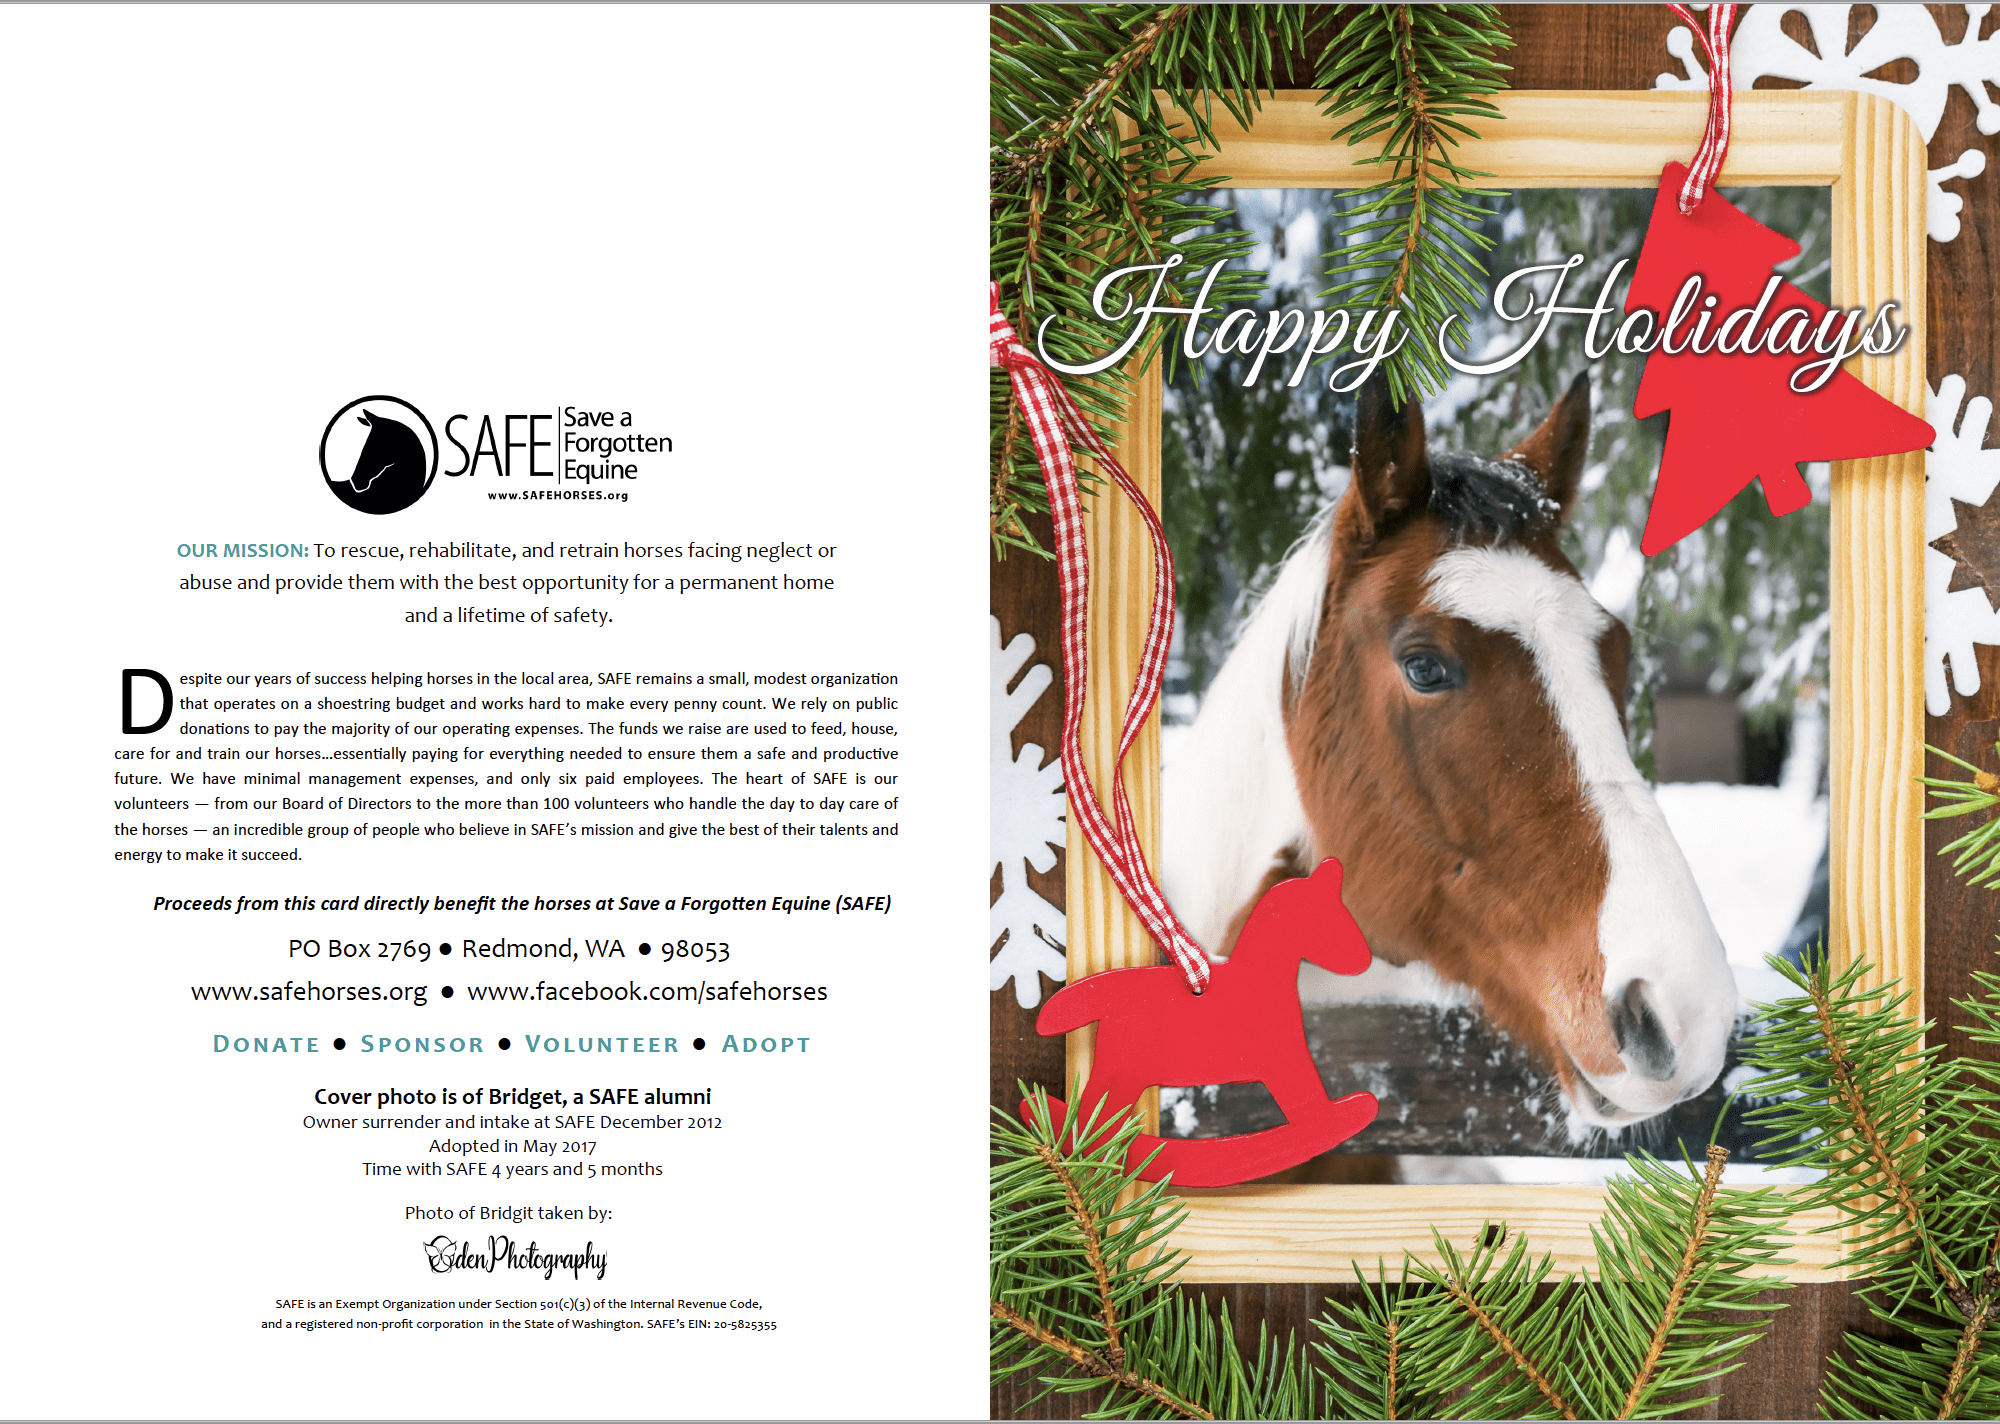 SAFE Holiday Cards are now available!